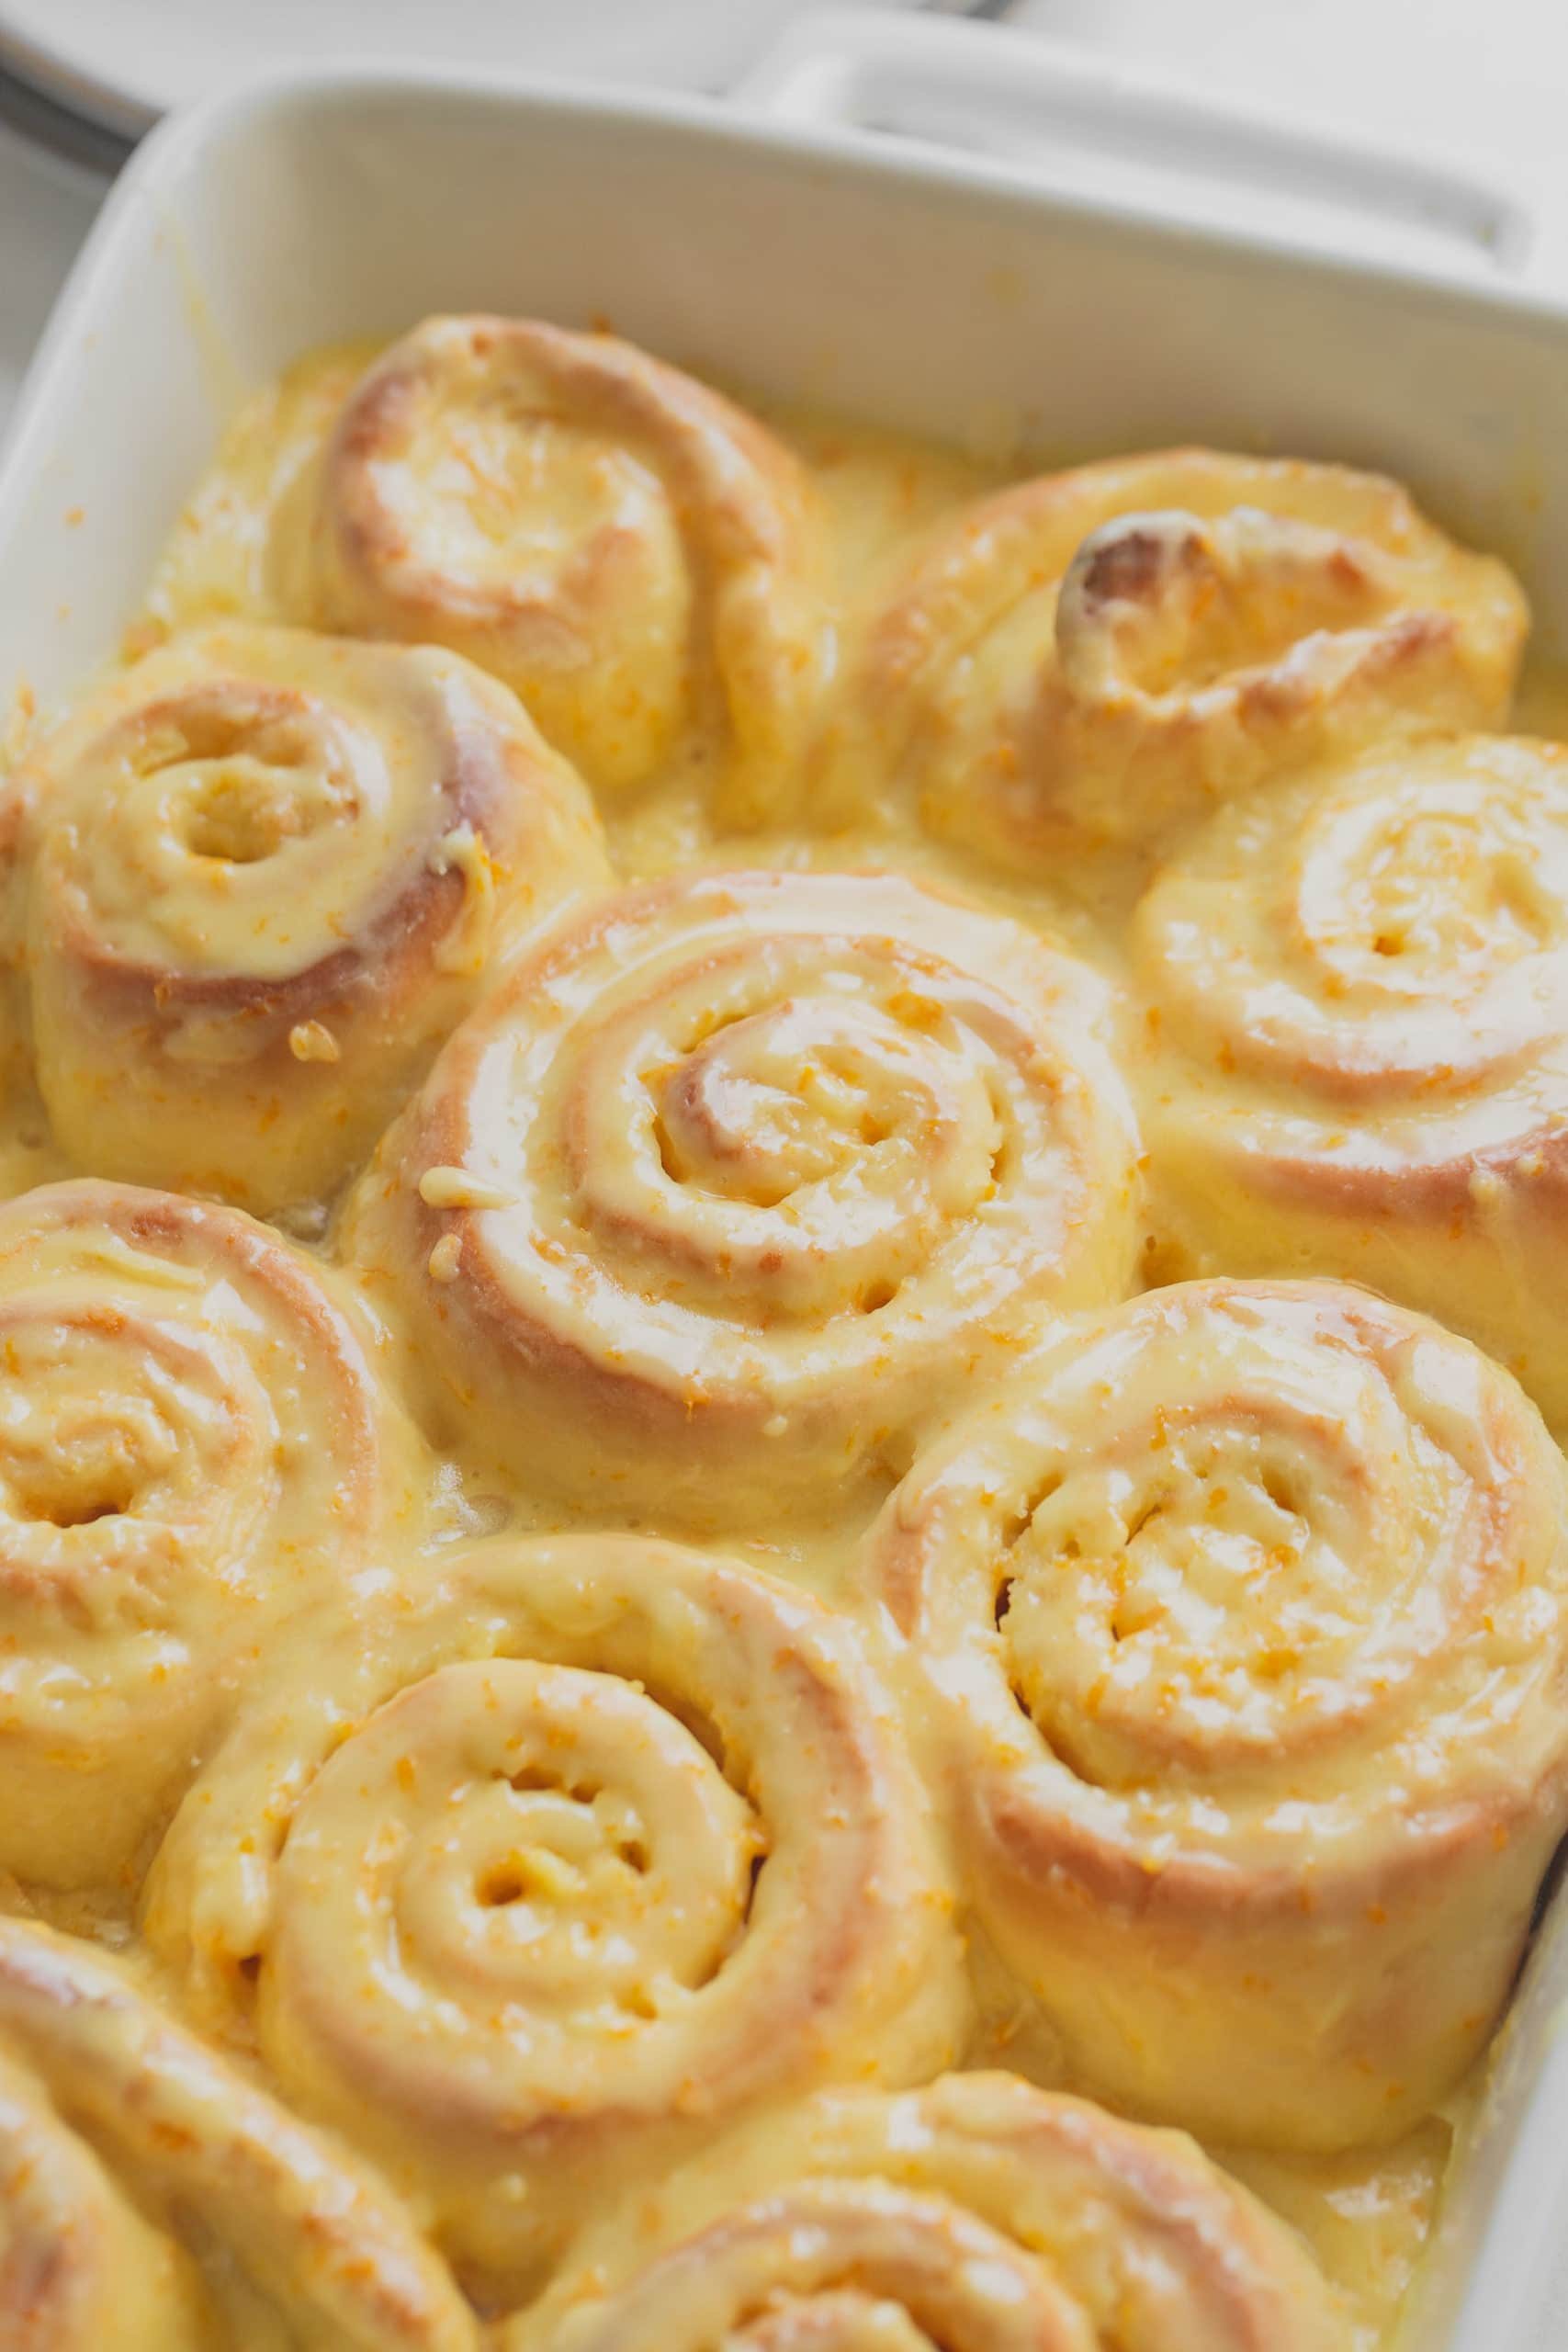 A pan of baked, glazed orange rolls. They are golden brown with an orange glaze filled with bits of orange zest.